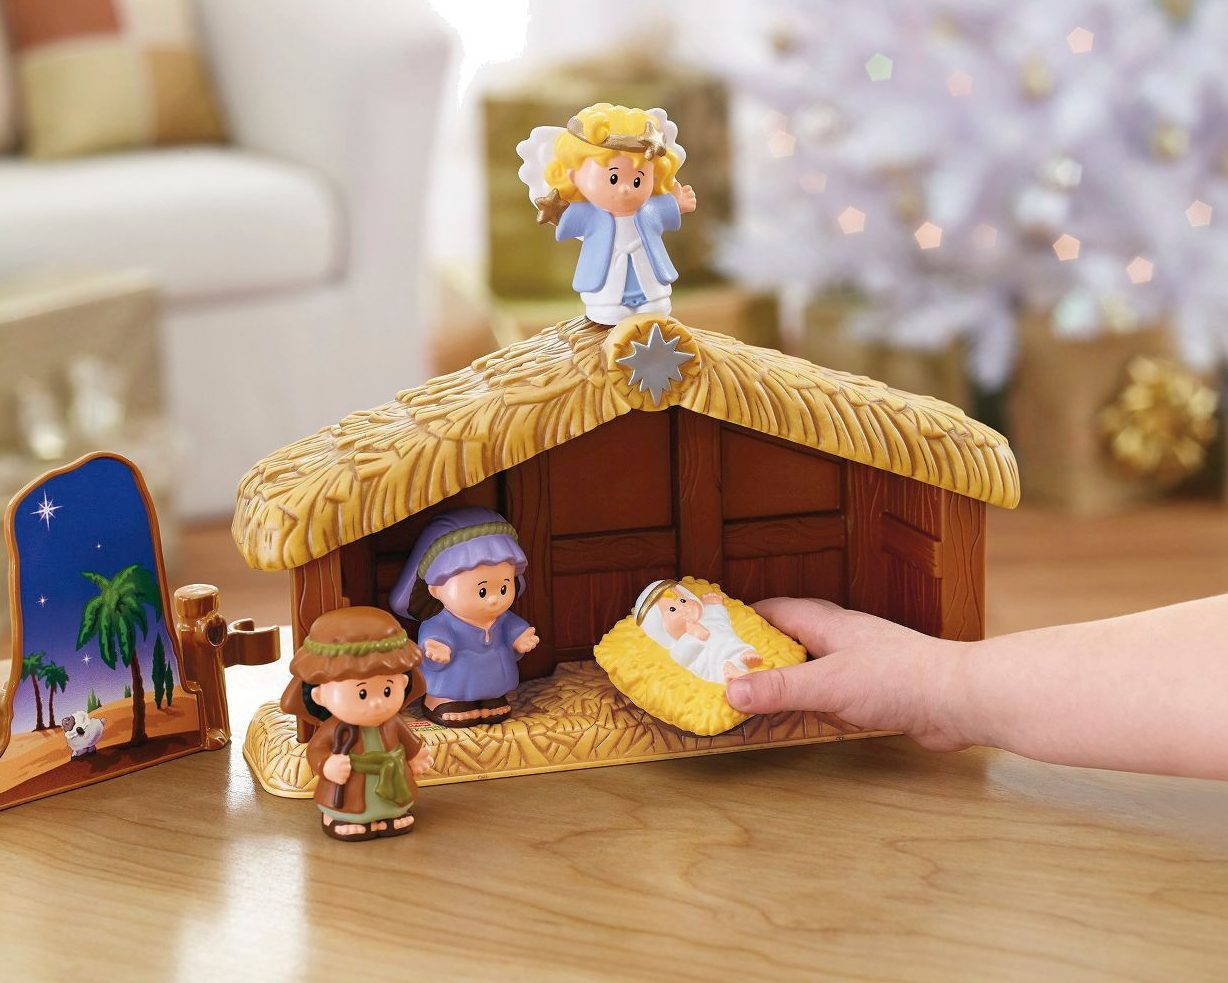 kid playing with fisher price nativity